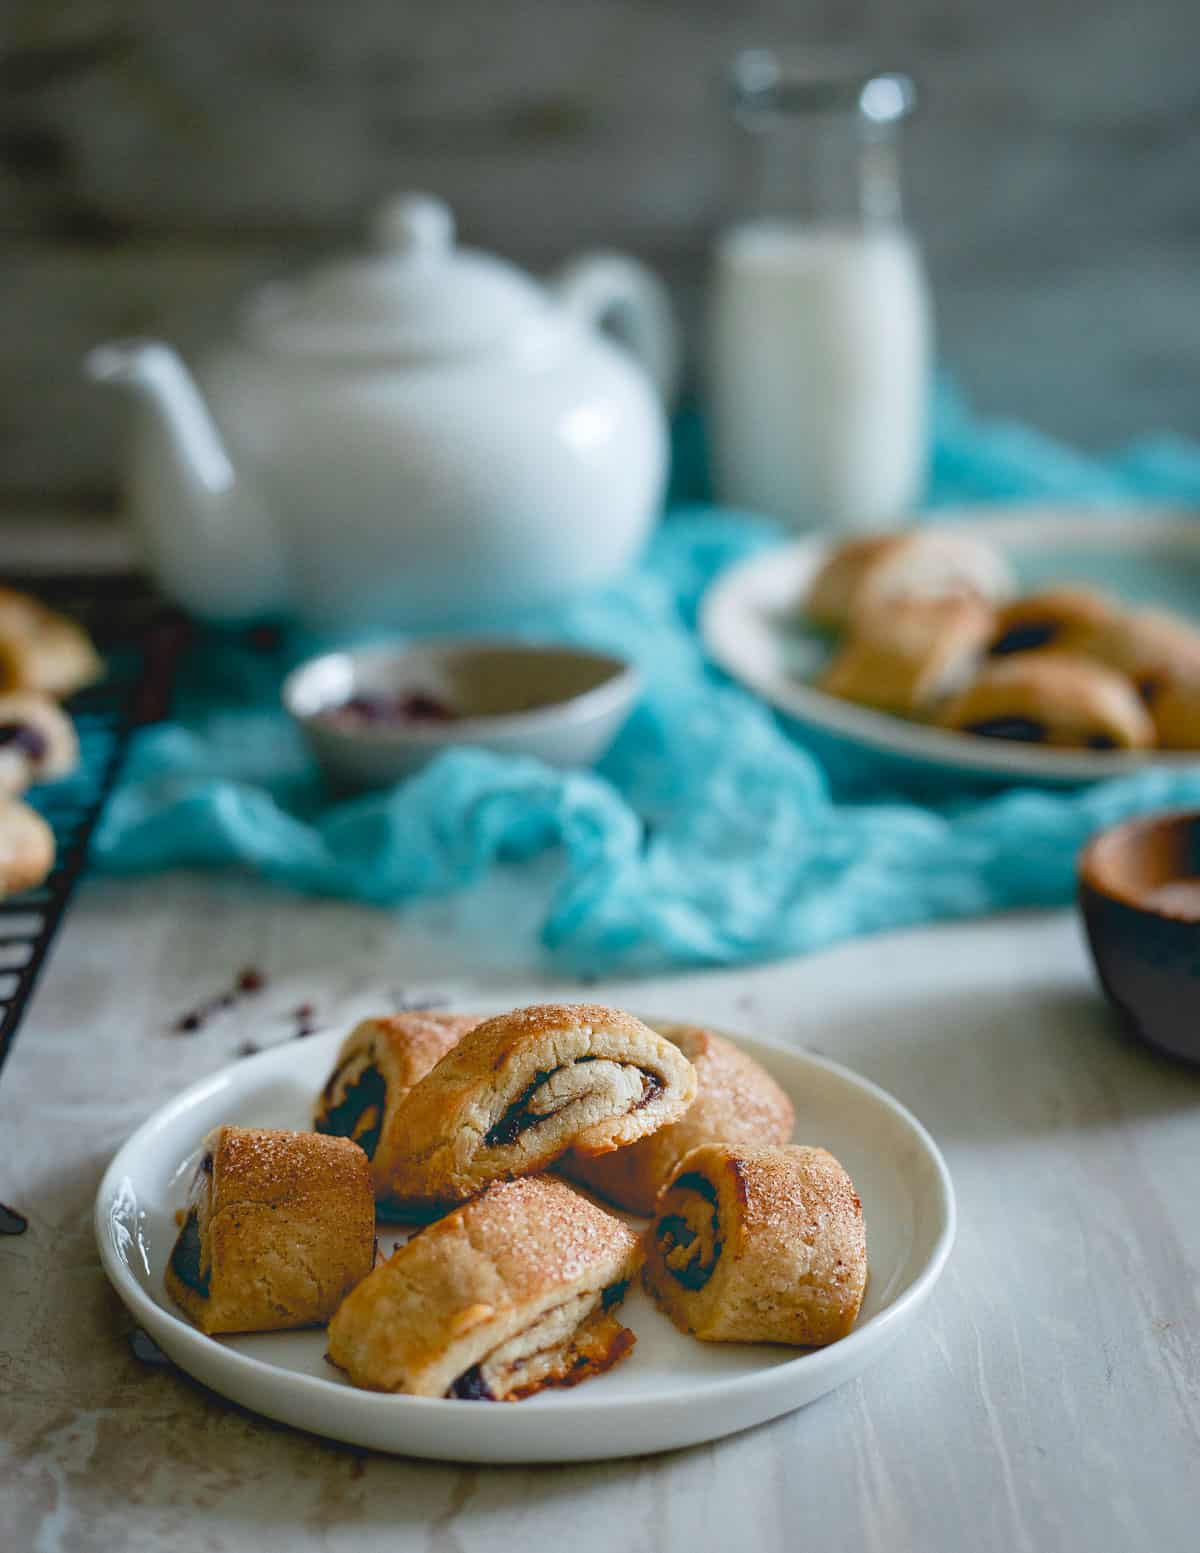 These gluten free apple butter rugelach are studded with cacao nibs for a crunchy bite. They're buttery, soft and a fun cookie option for the season!